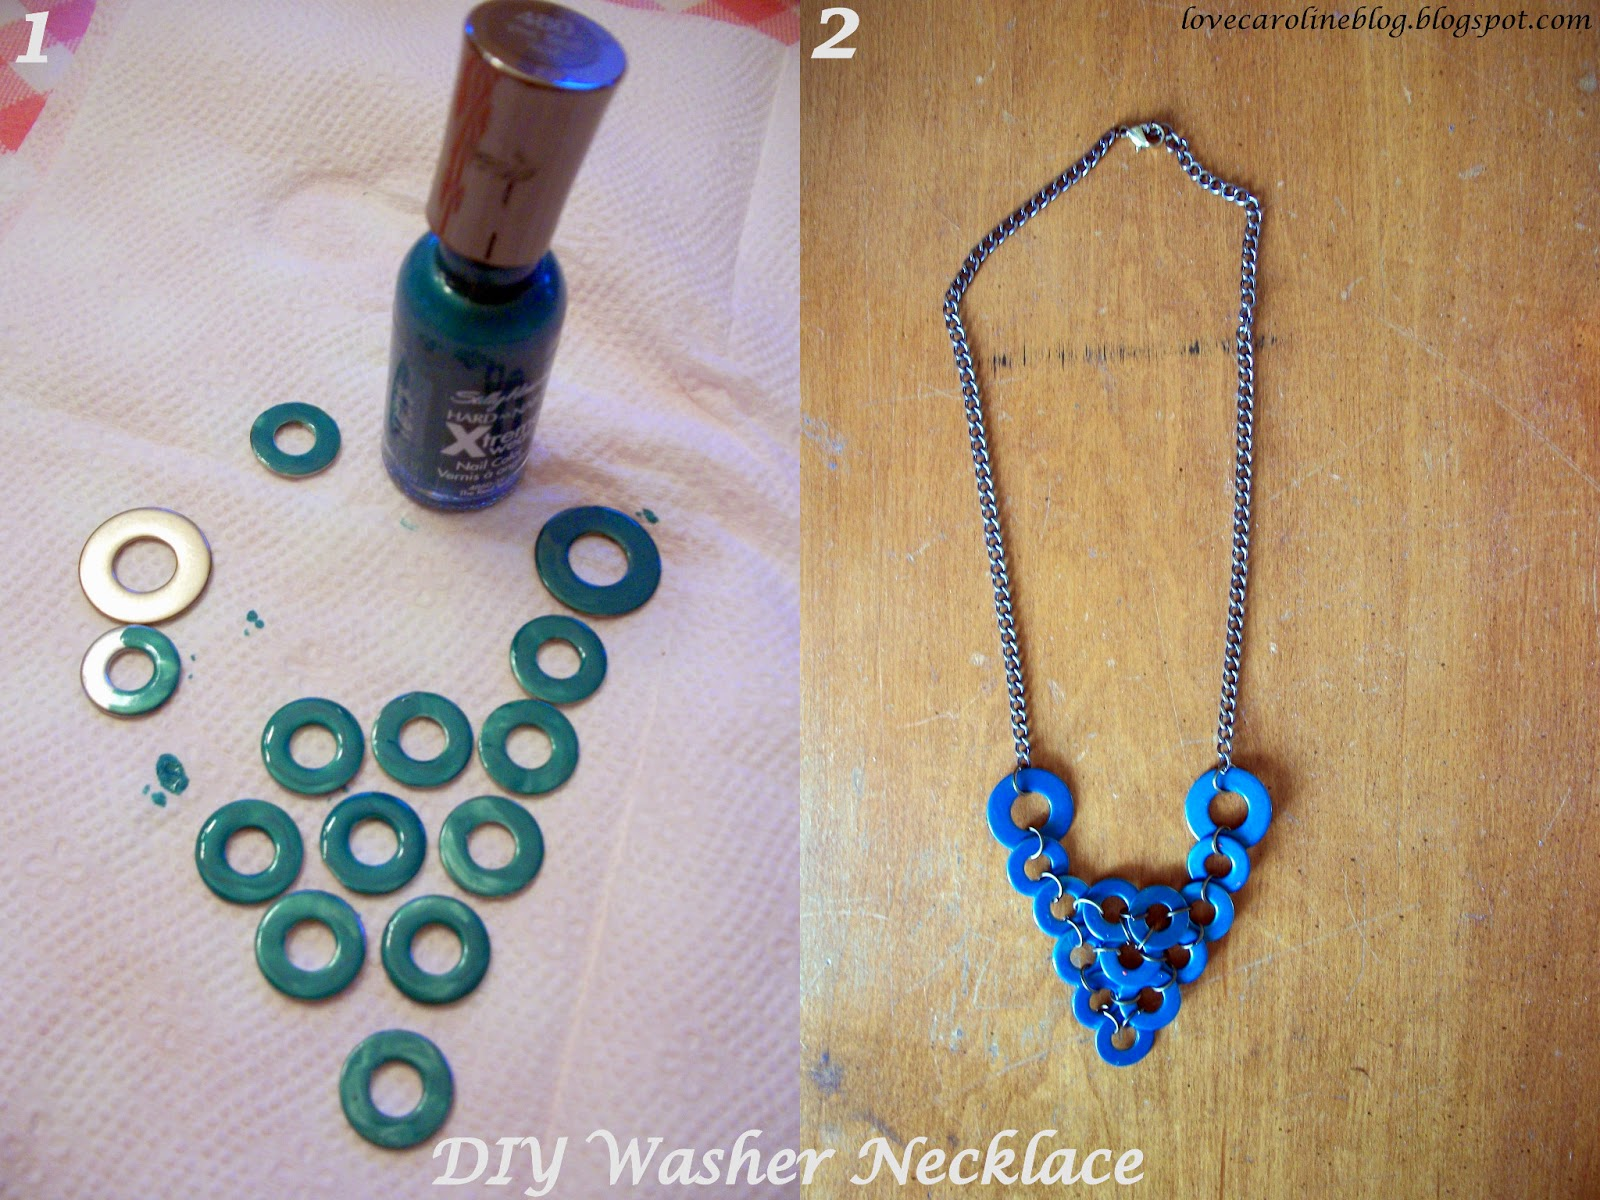 my bloggable neon day washer img diy pink ribbon necklace